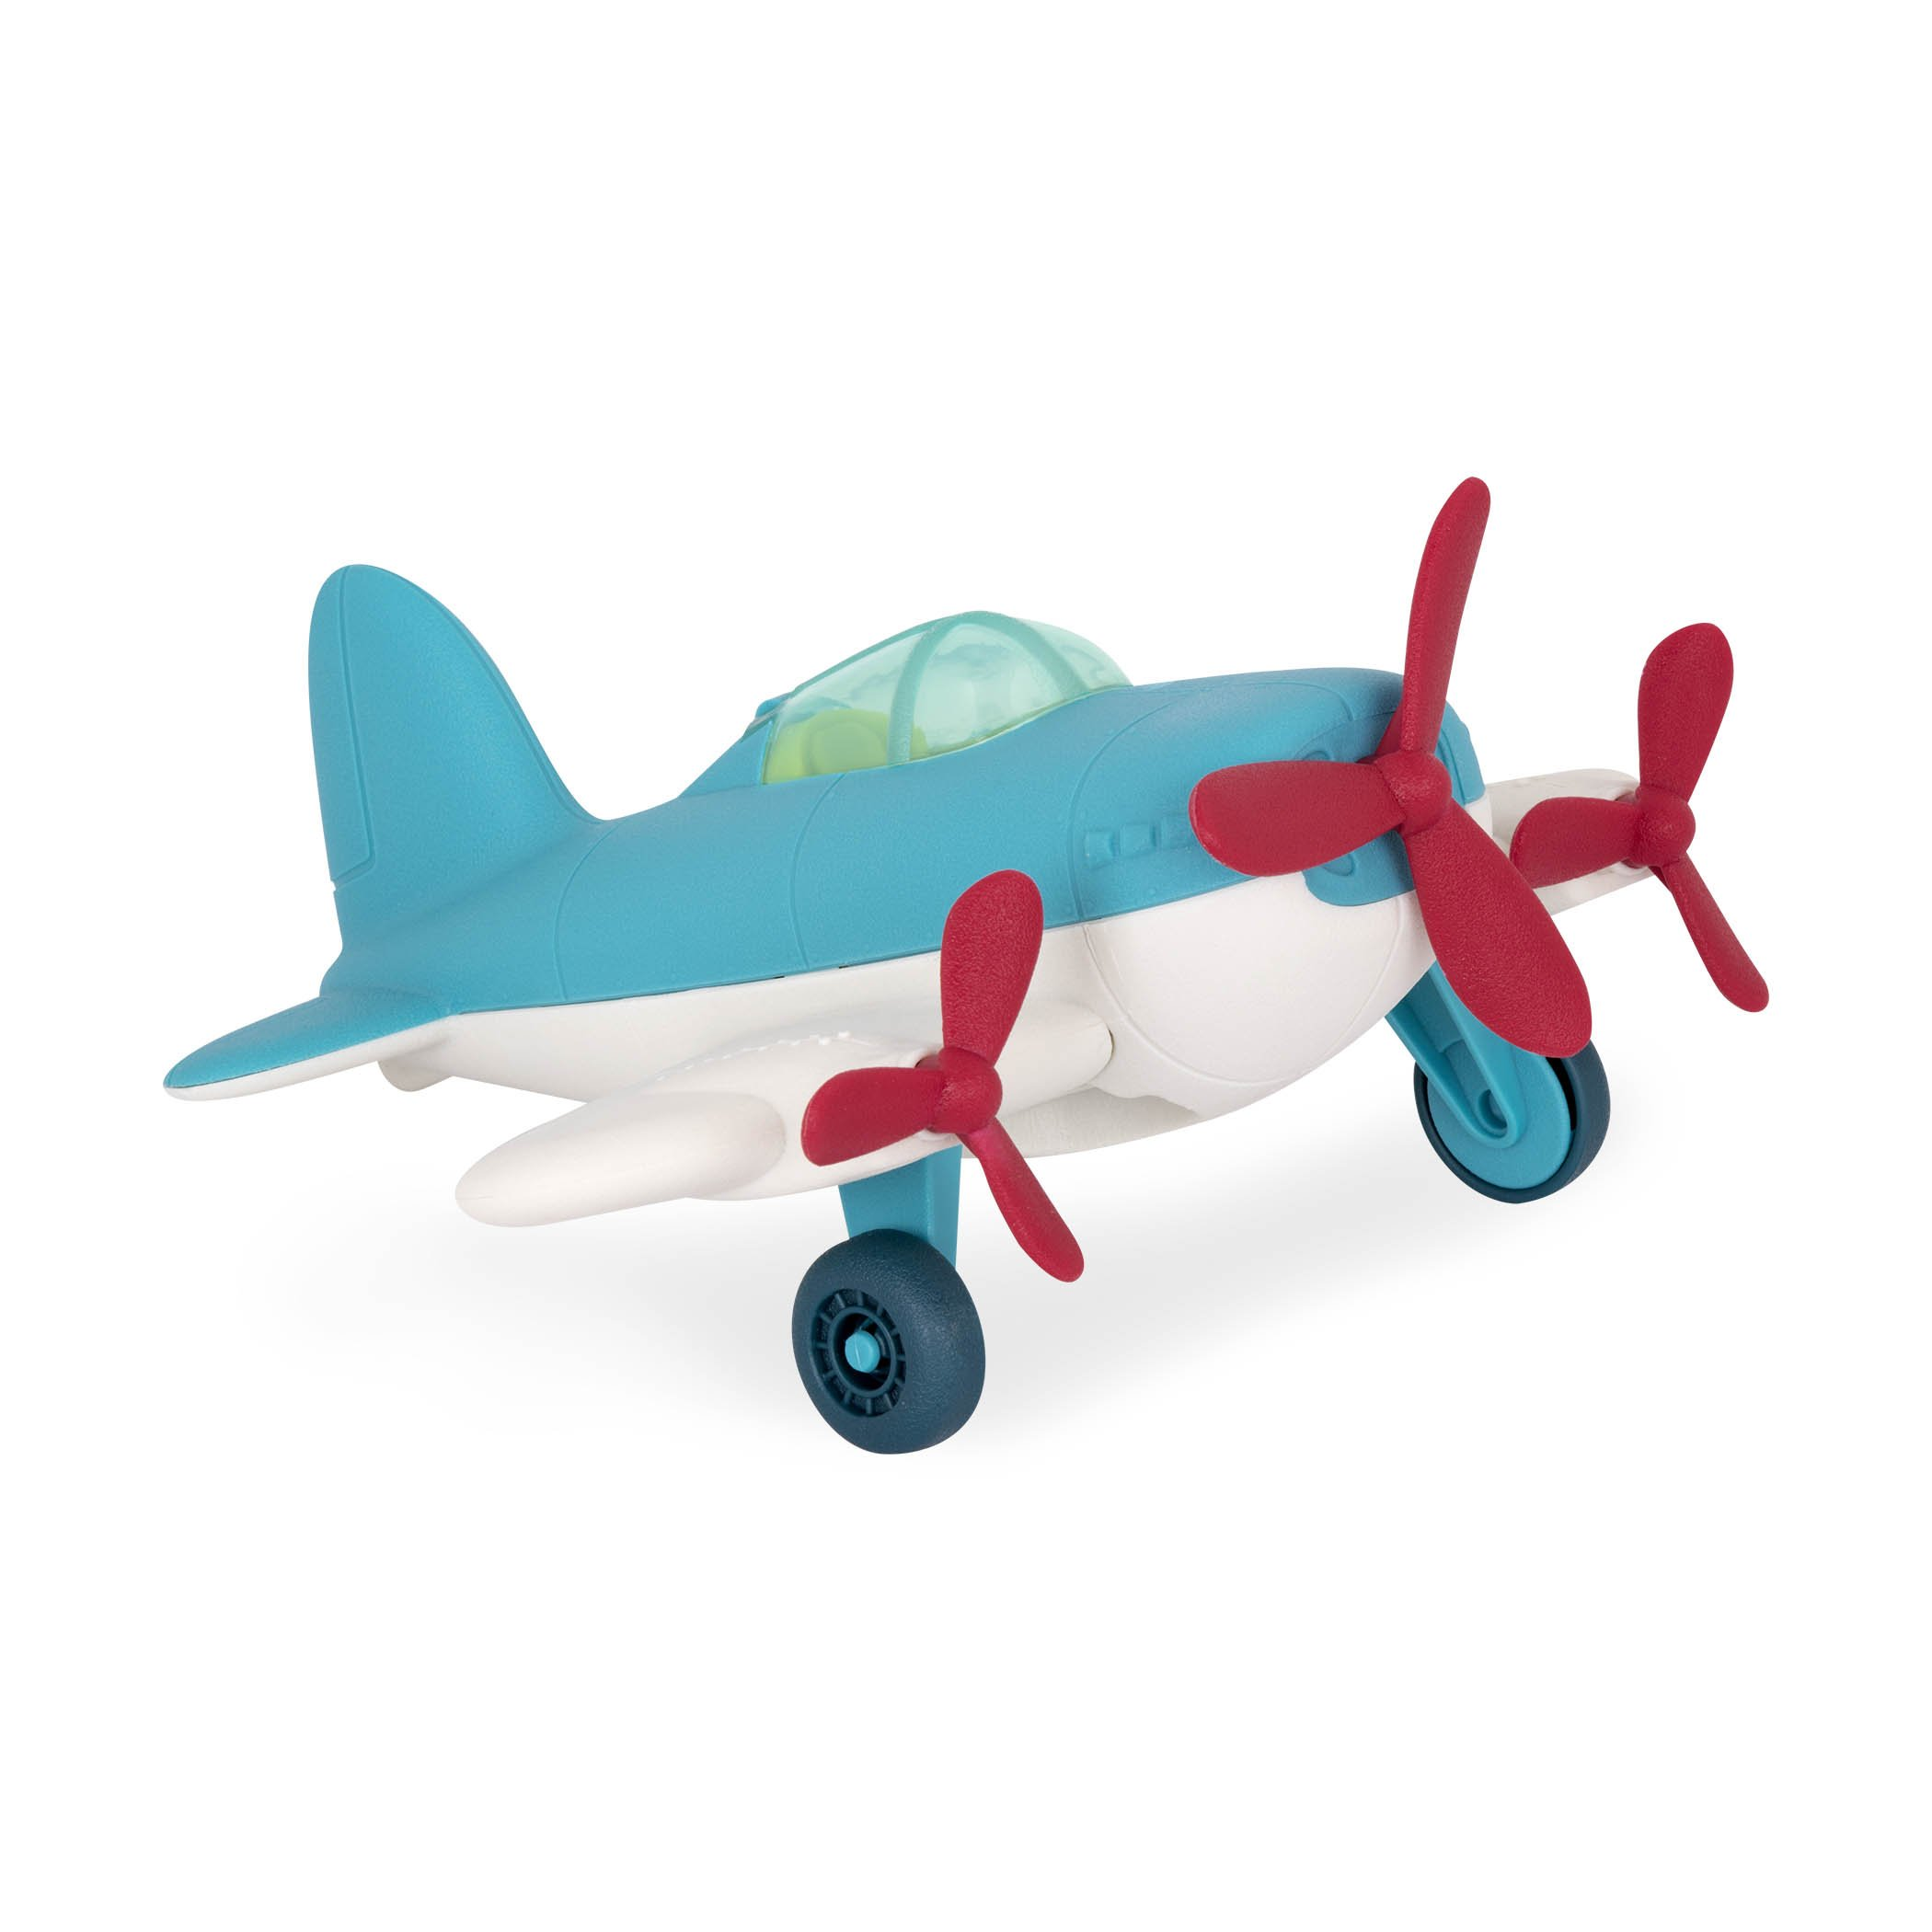 Wonder Wheels by Battat - Airplane - Toy Airplane for Toddlers Age 1 & Up (1 Pc)  - 100% Recyclable